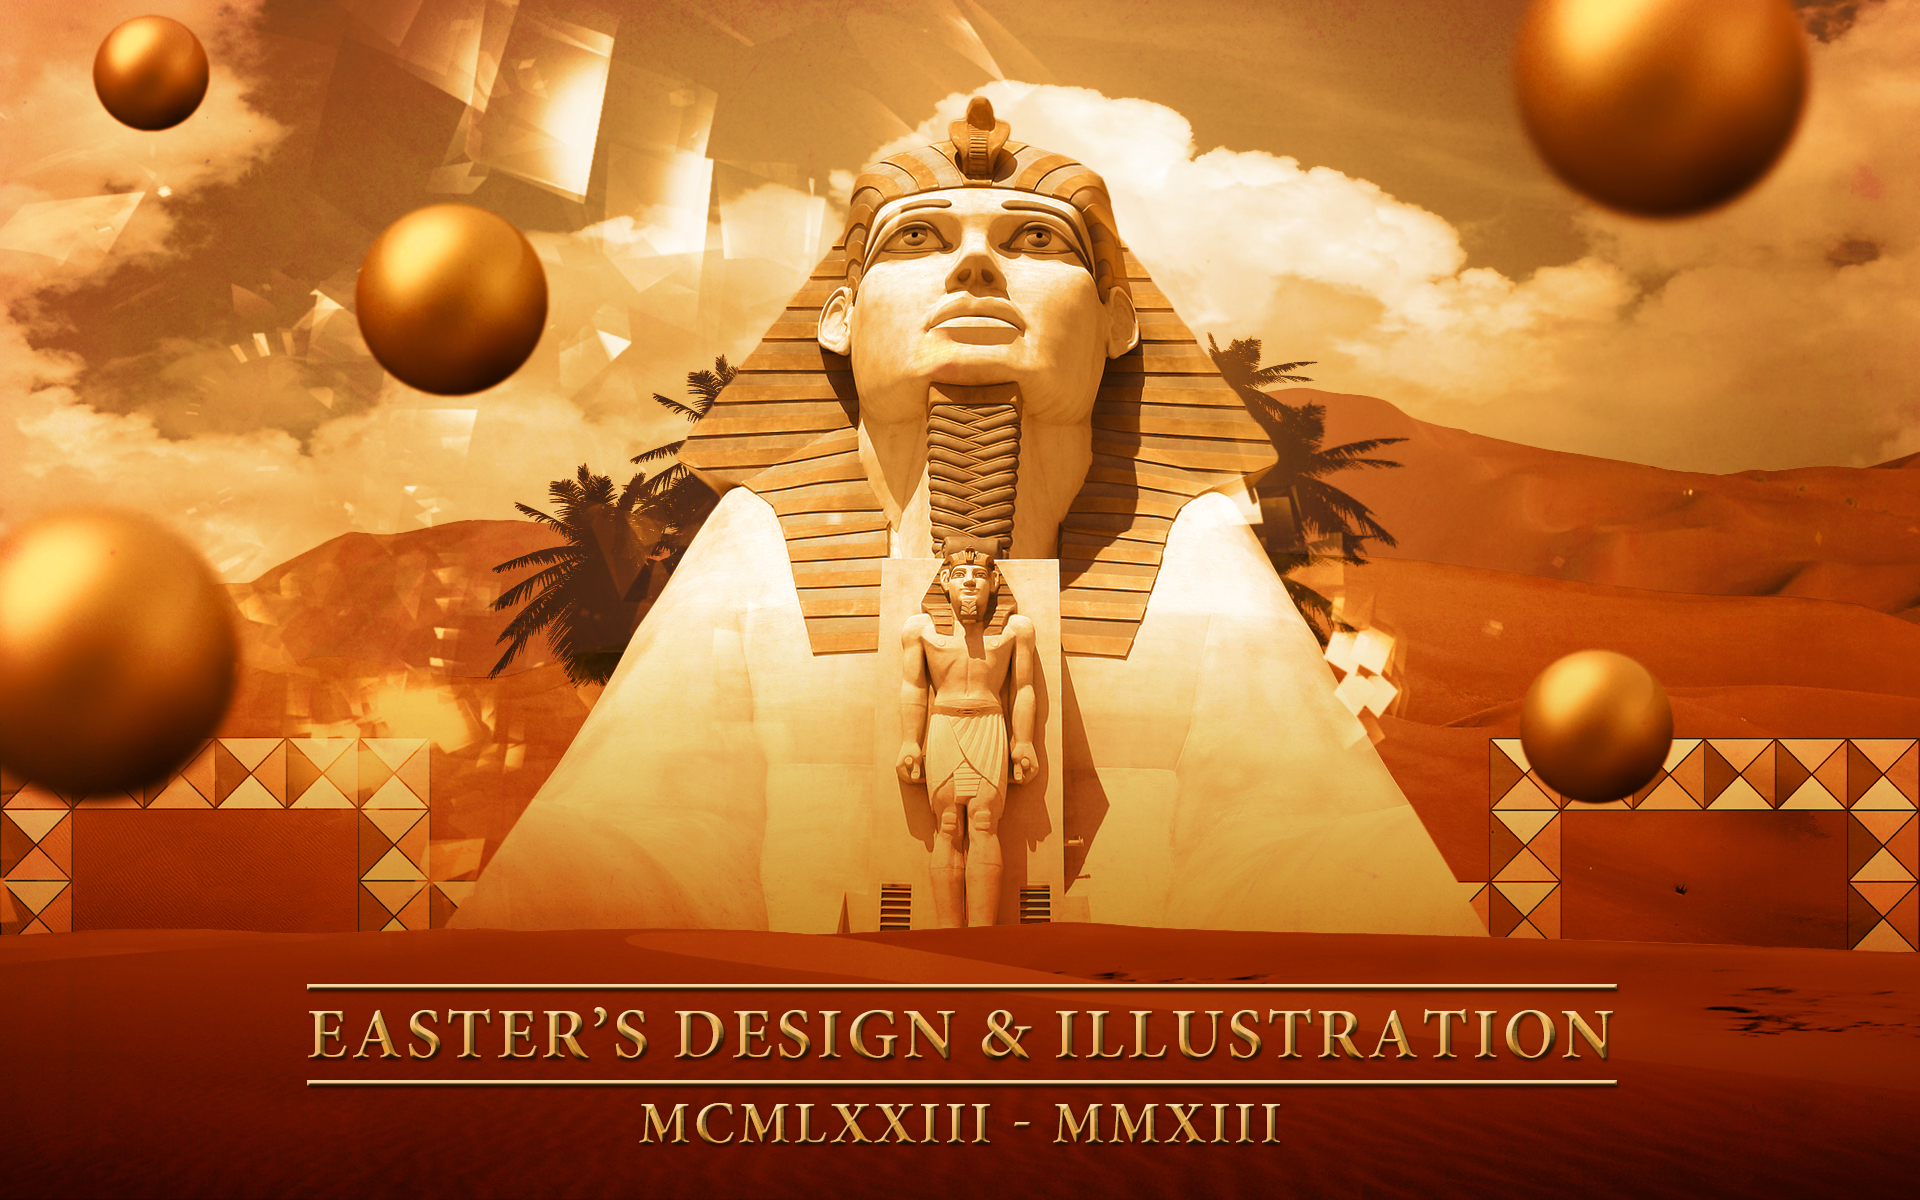 New 3d Abstract Wallpapers Space And Fantasy Effect S Easter S Design Amp Illustration